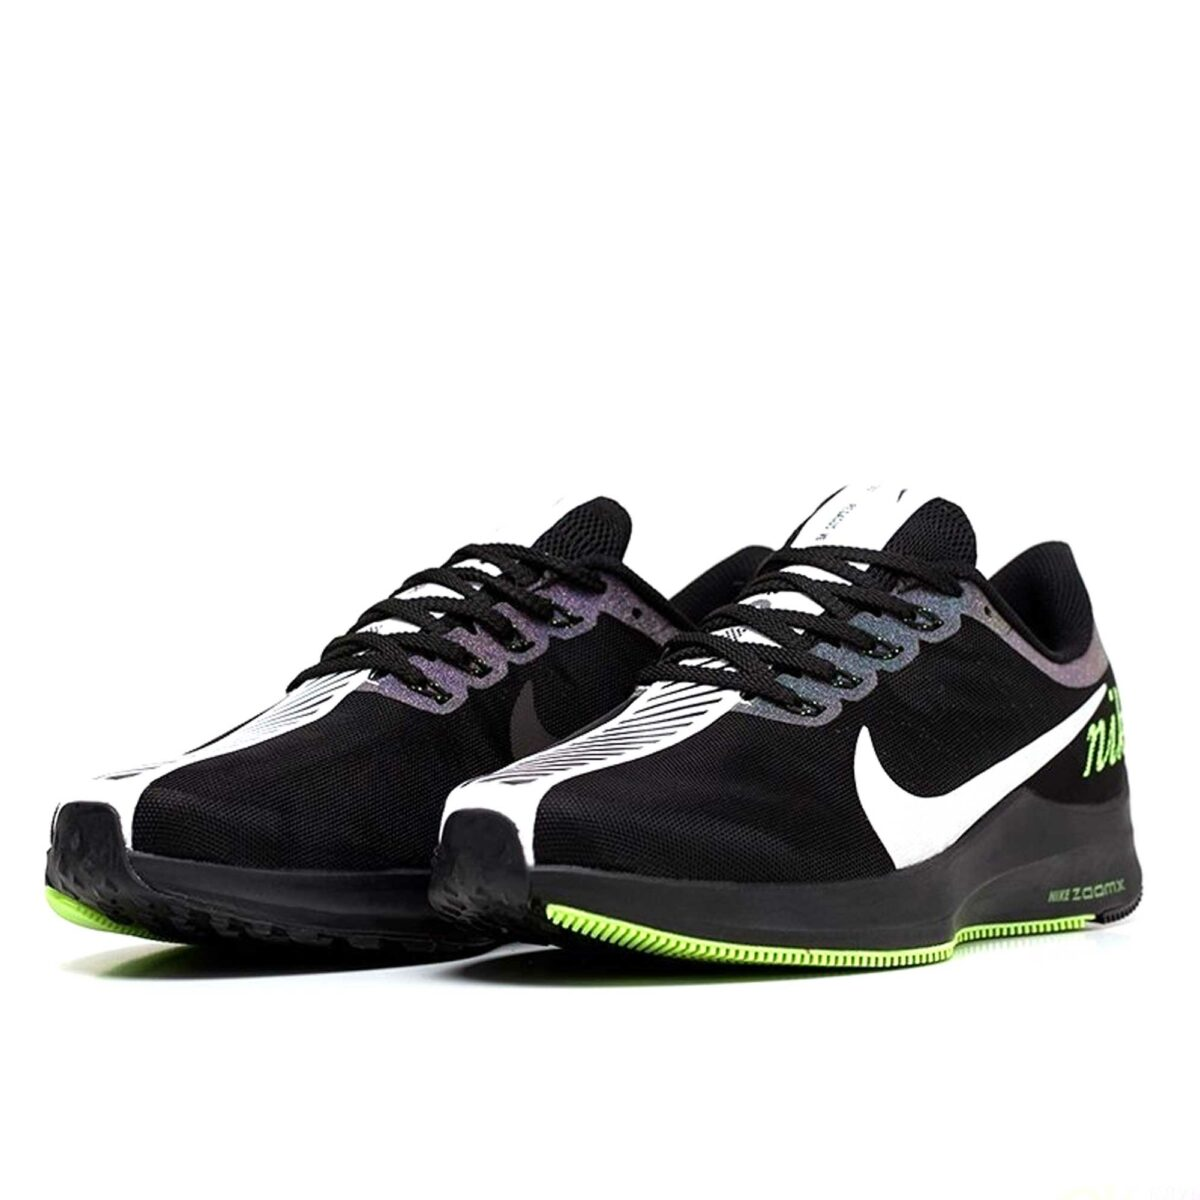 nike zoom pegasus 35 turbo black green купить